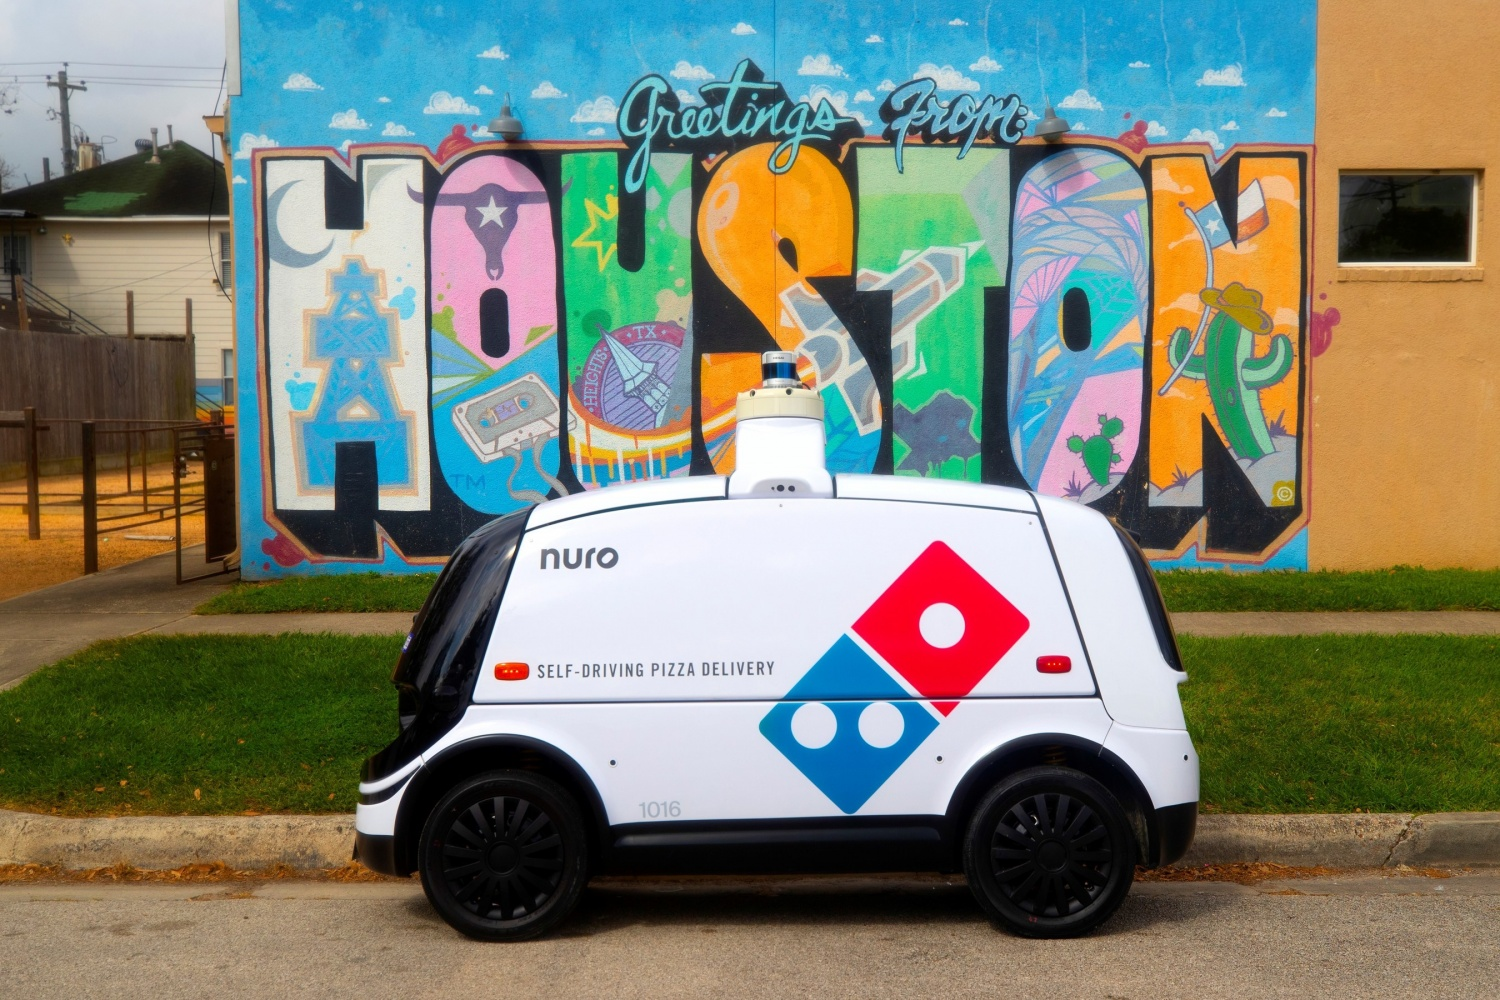 Domino's Pizza Self-Driving Delivery Robot